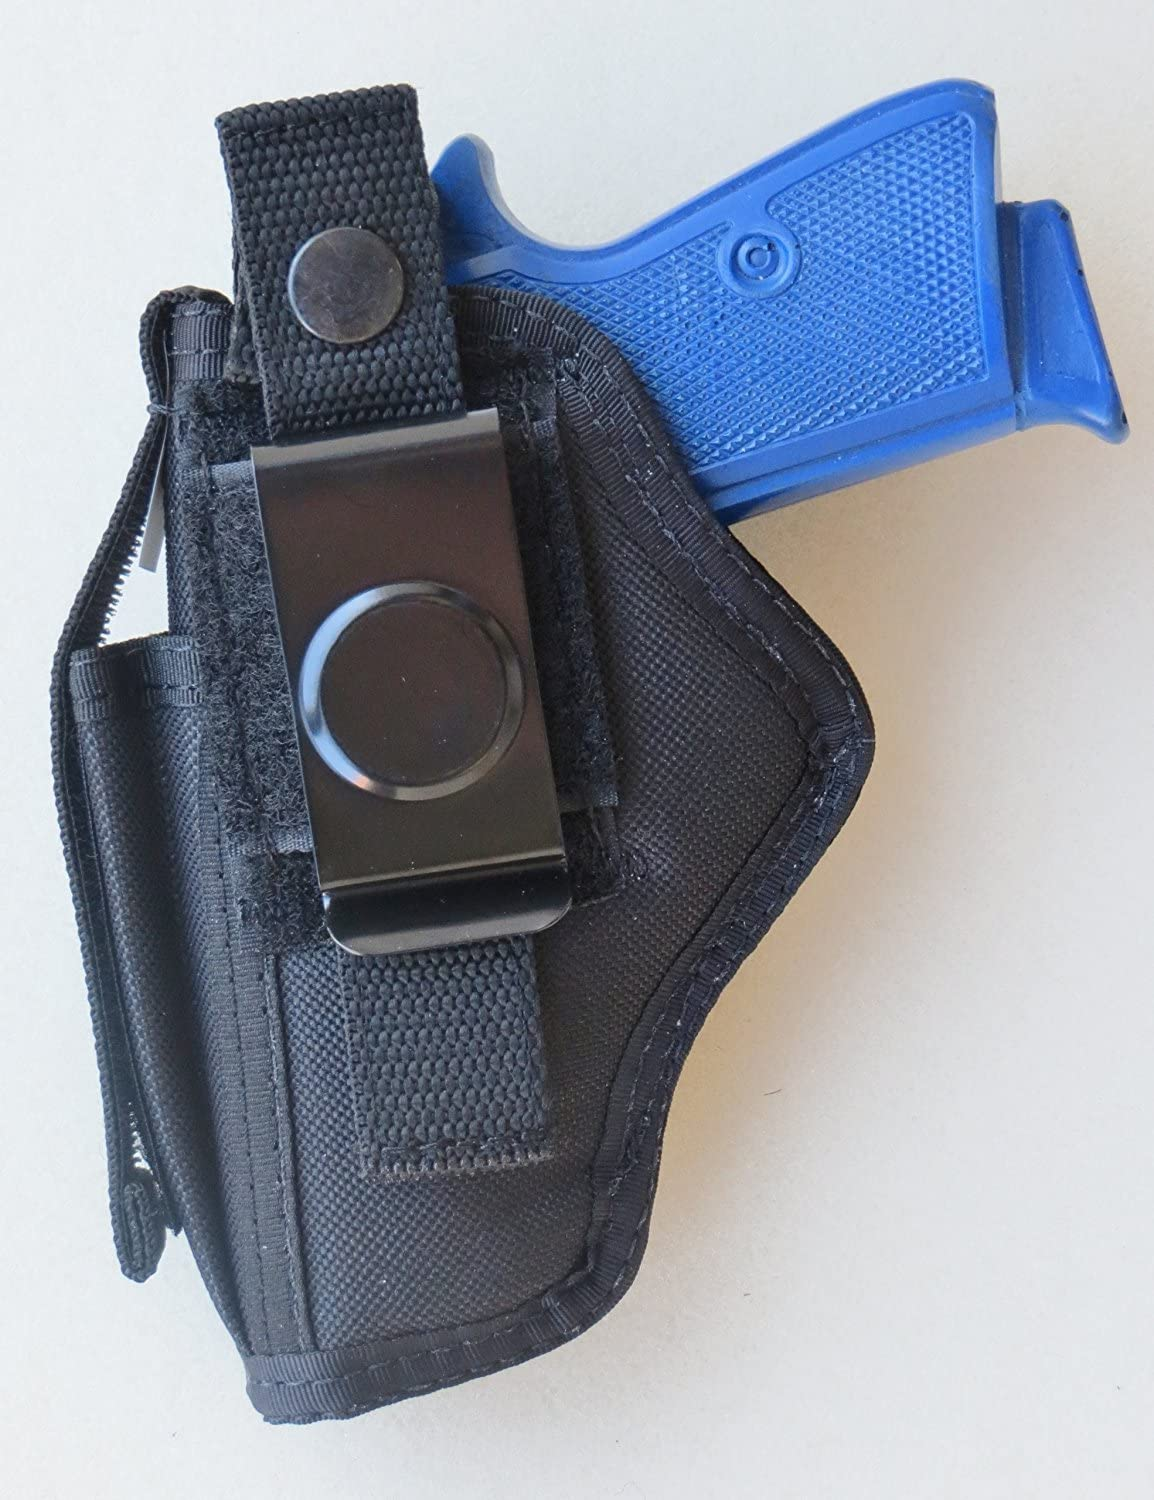 Federal Holsterworks Hip Holster for Walther P22 & Ruger SR22 Without Underbarrel Laser